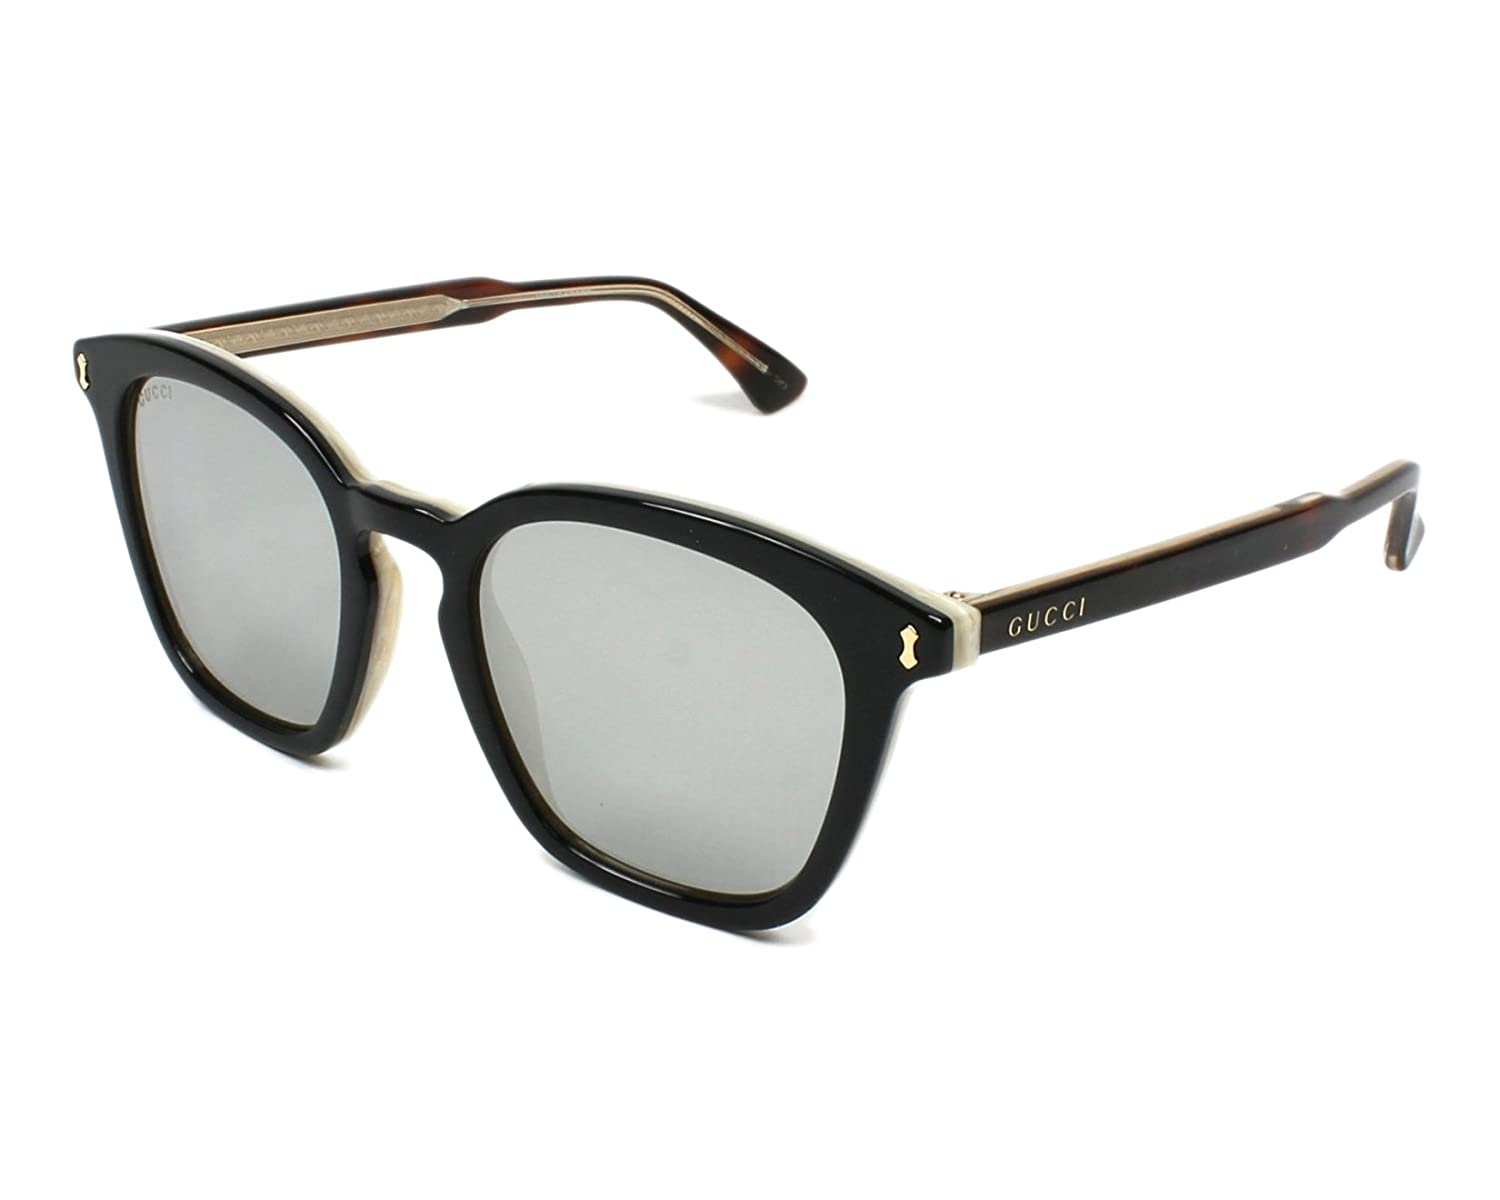 8e5b1f55c59 Amazon.com  Gucci GG0125S 006 (Black - Havana with Grey with Mirror effect  lenses)  Clothing